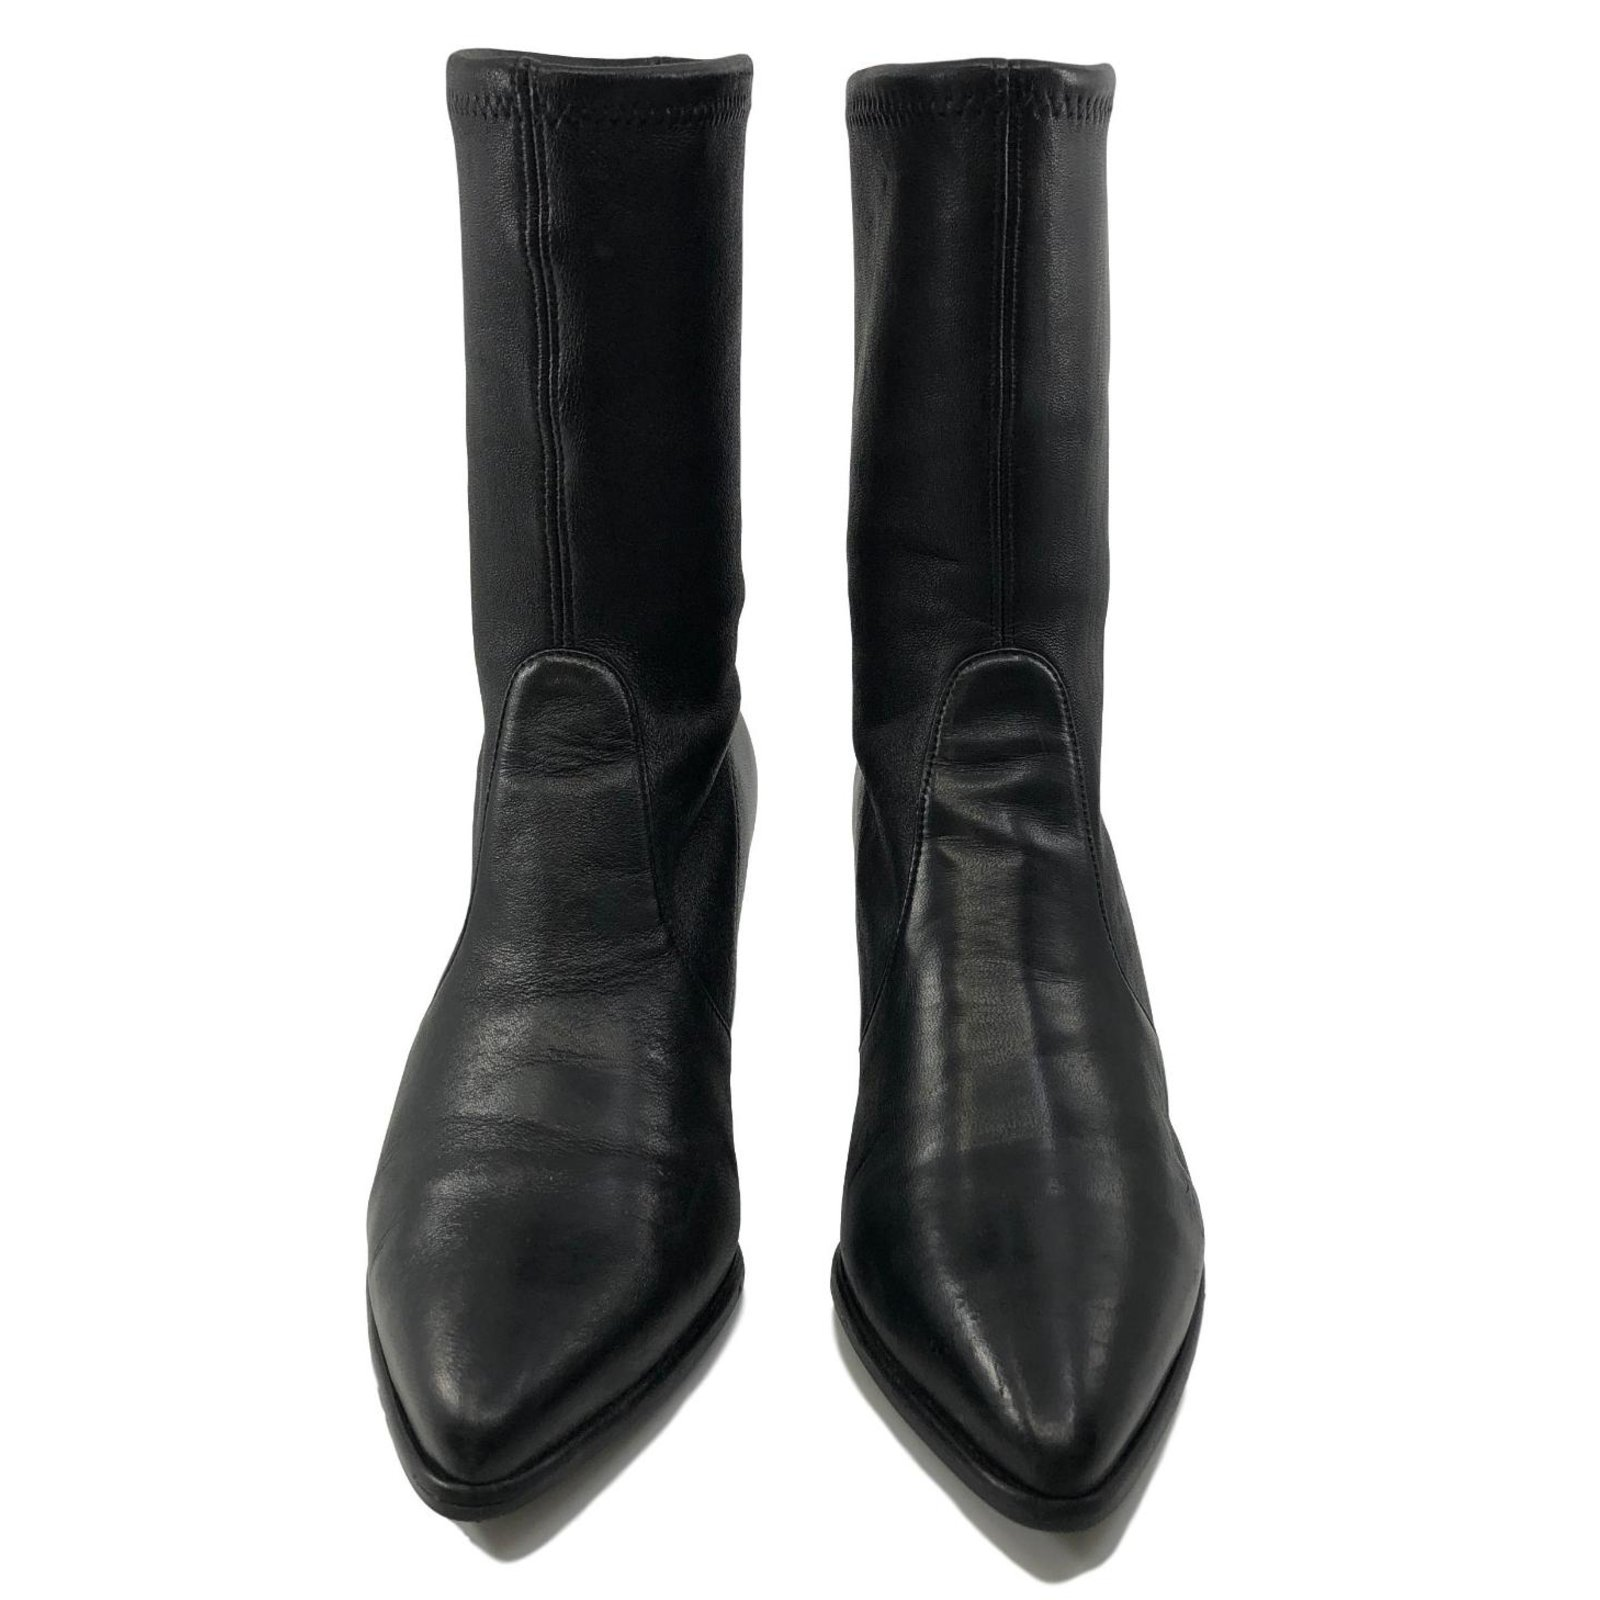 Stuart Weitzman Ankle boots Ankle Boots